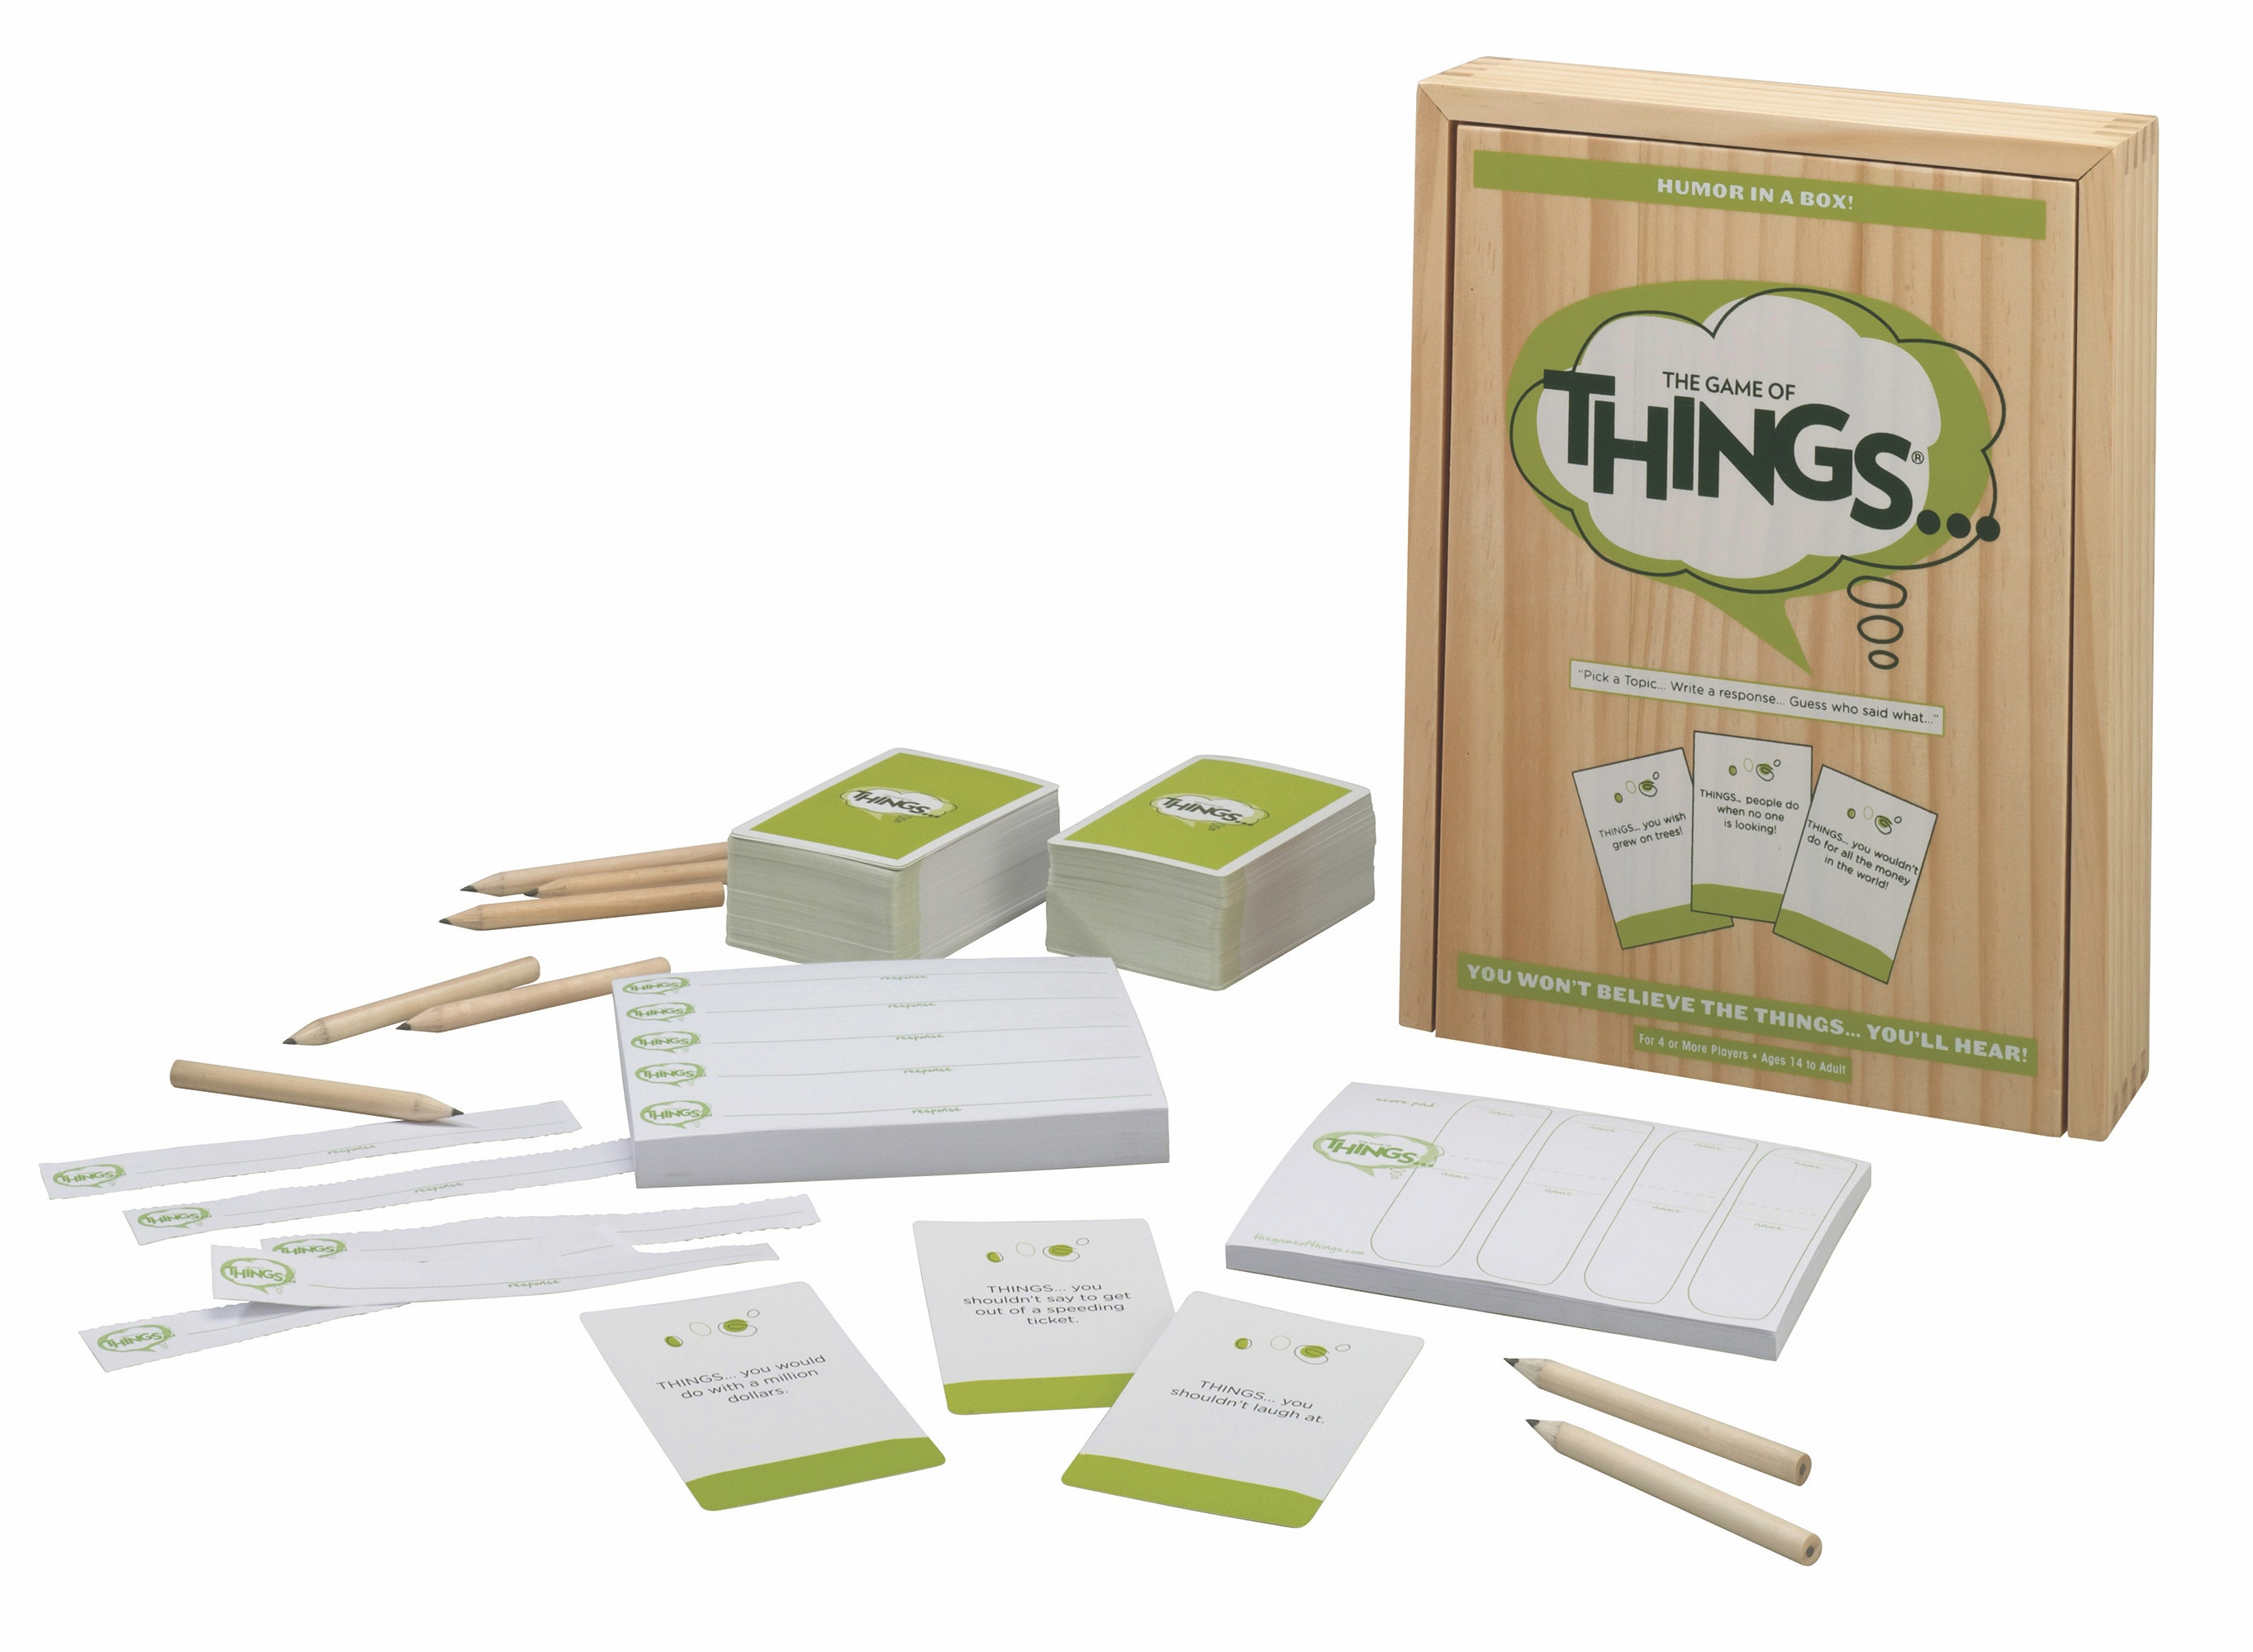 Game of Things  sweepstakes